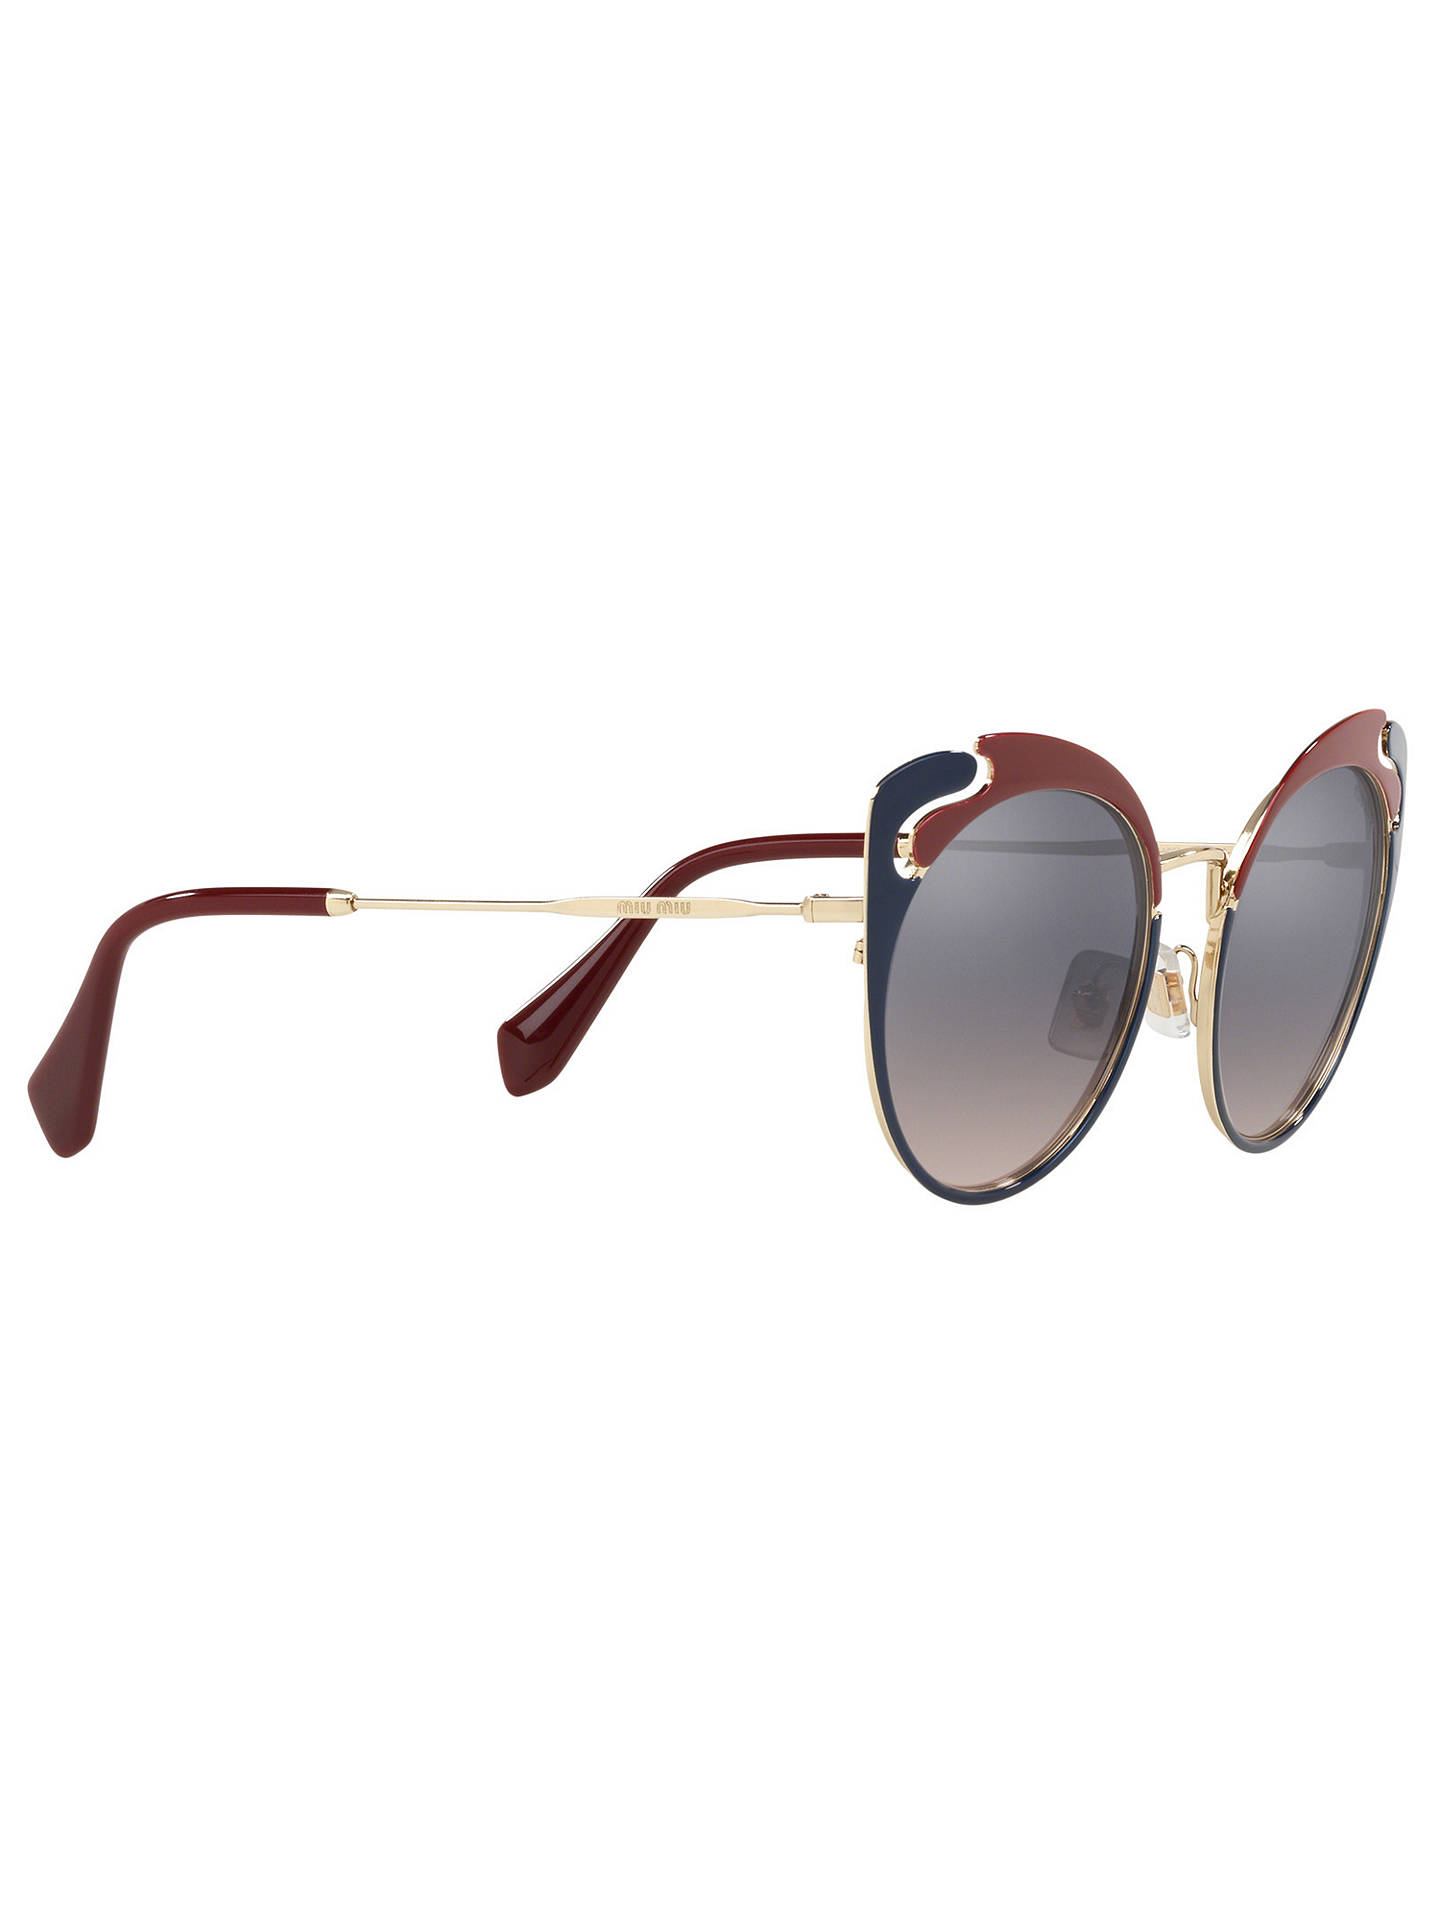 b5632d9f182 Miu Miu MU 57TS Women s Cat s Eye Sunglasses at John Lewis   Partners